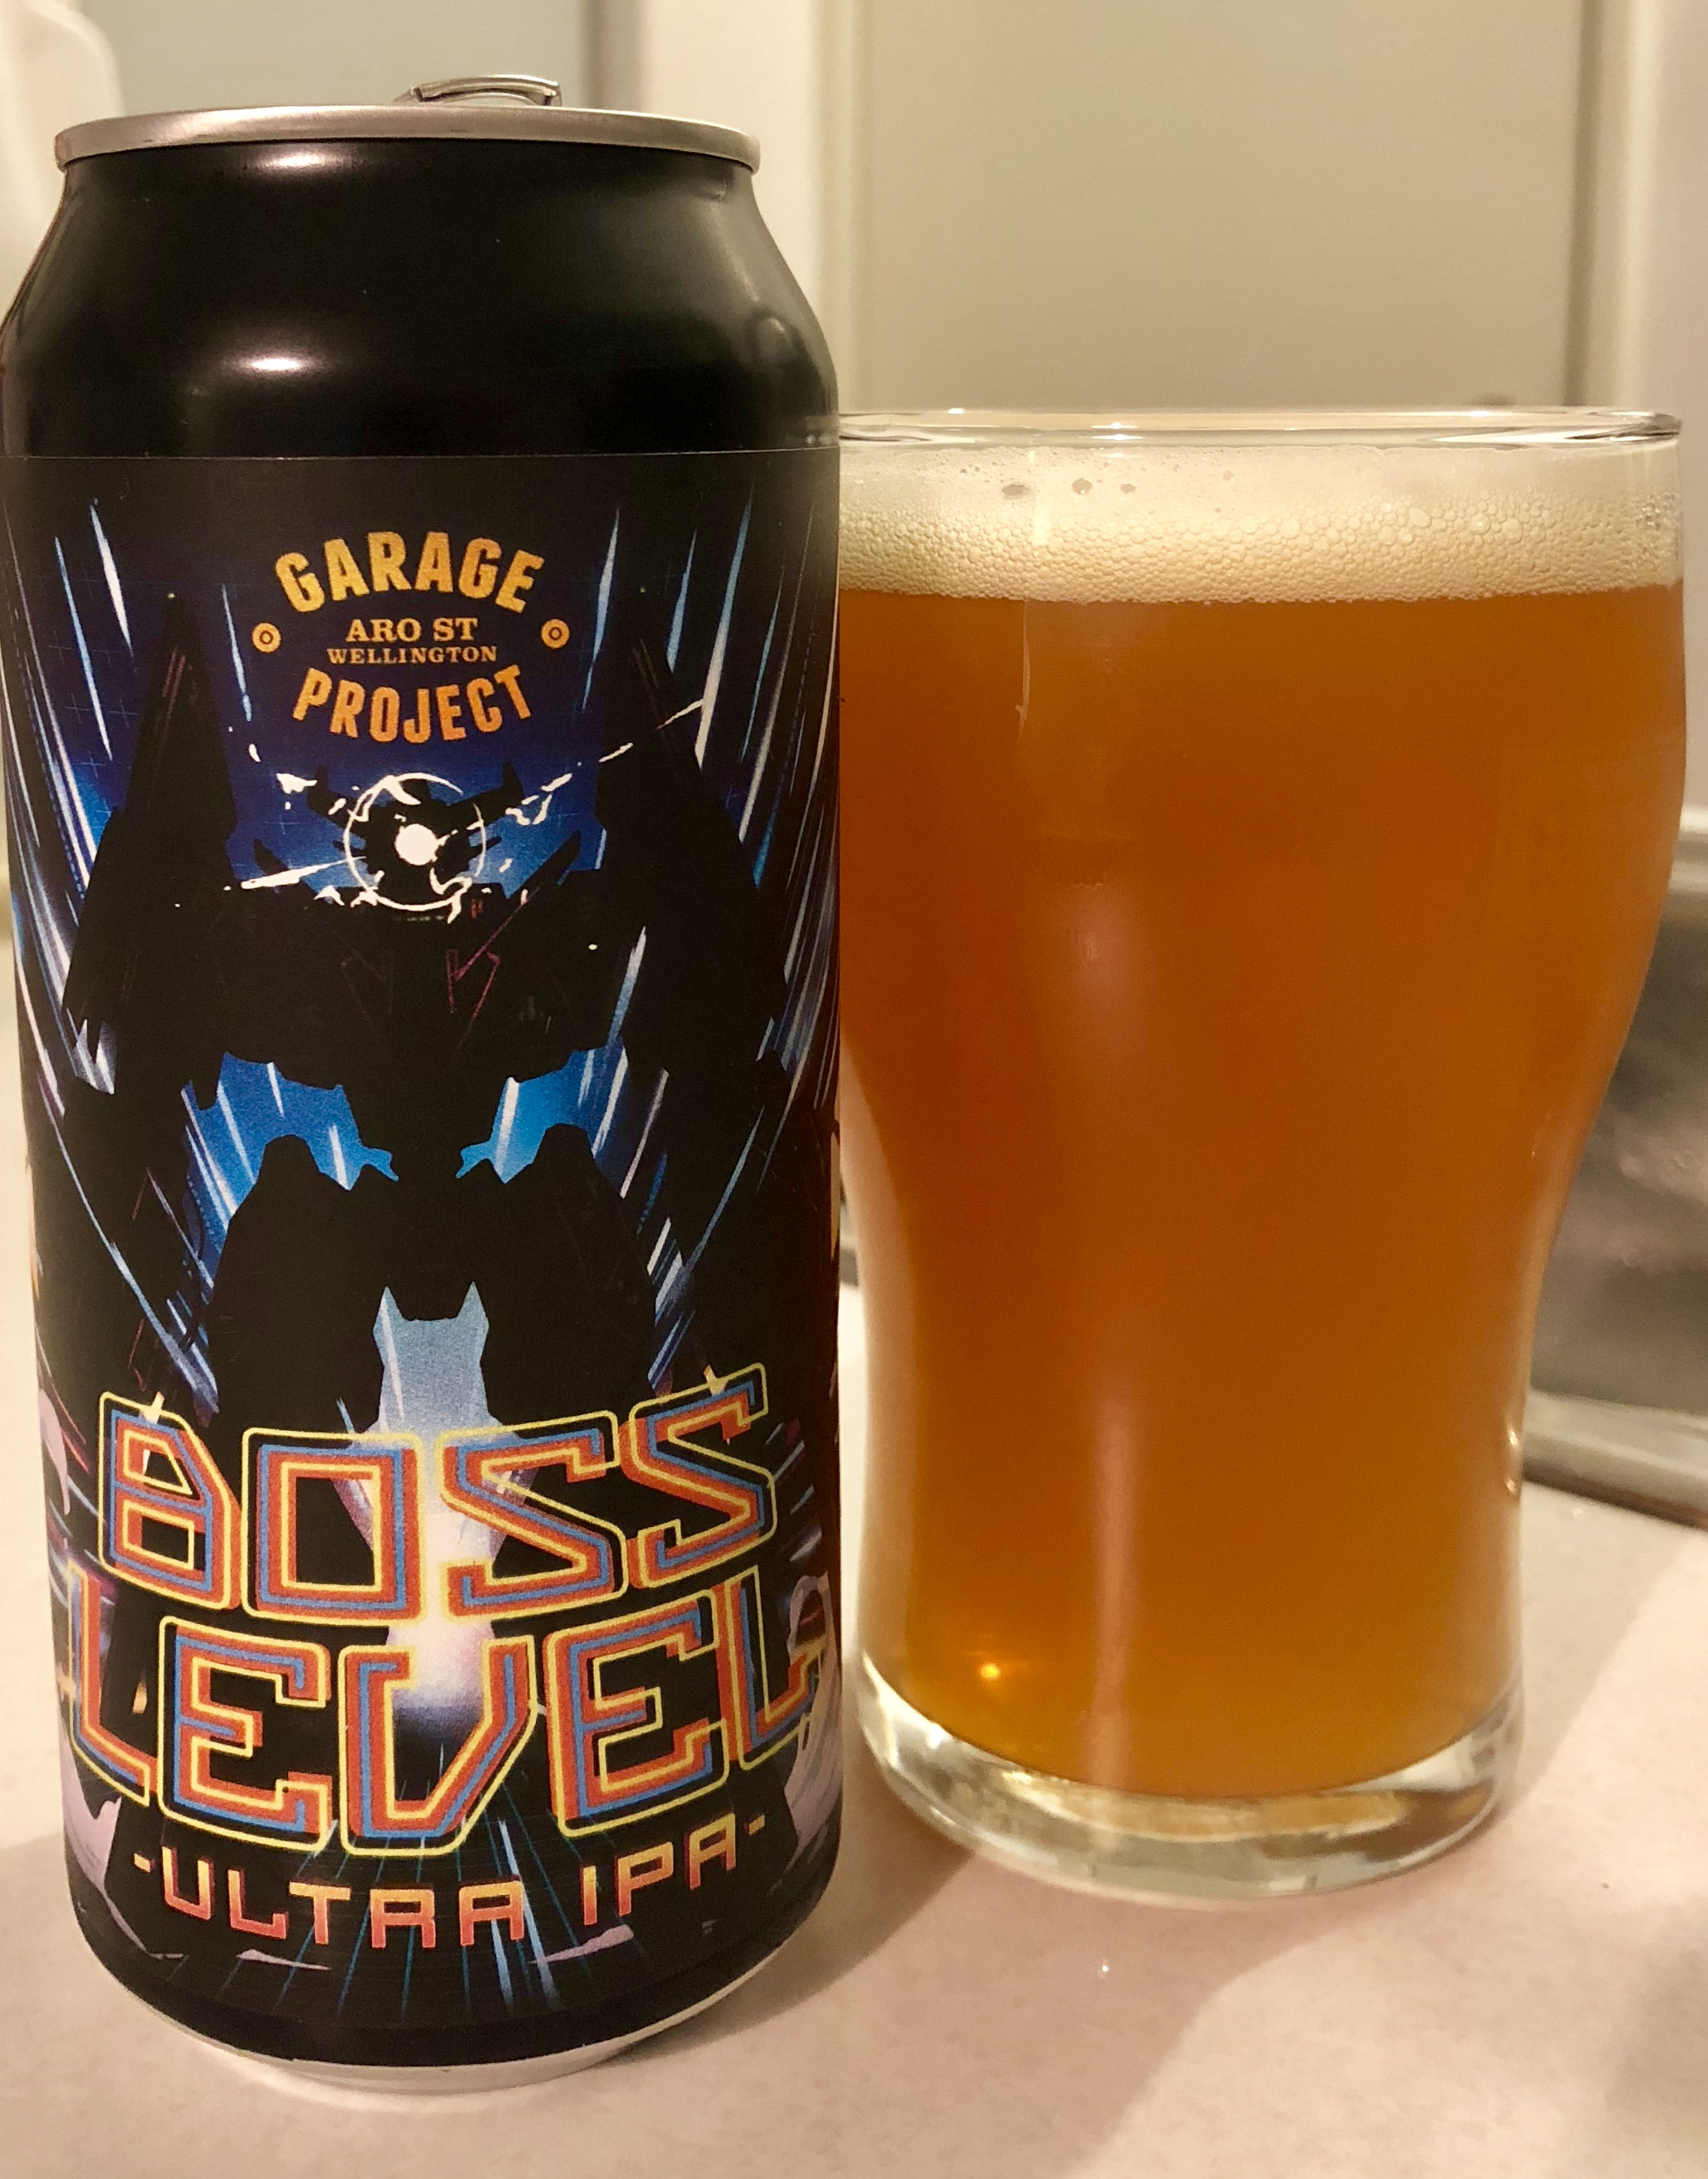 Garage Project Boss Level Ultra IPA (8.5% abv): NZ craft-leader Garage Project ascends to 'Boss Level' with five bold US hop varieties, a bedrock of malt support, and 100 IBU's of bitterness. Comes out all guns blazing and is all the better for it.